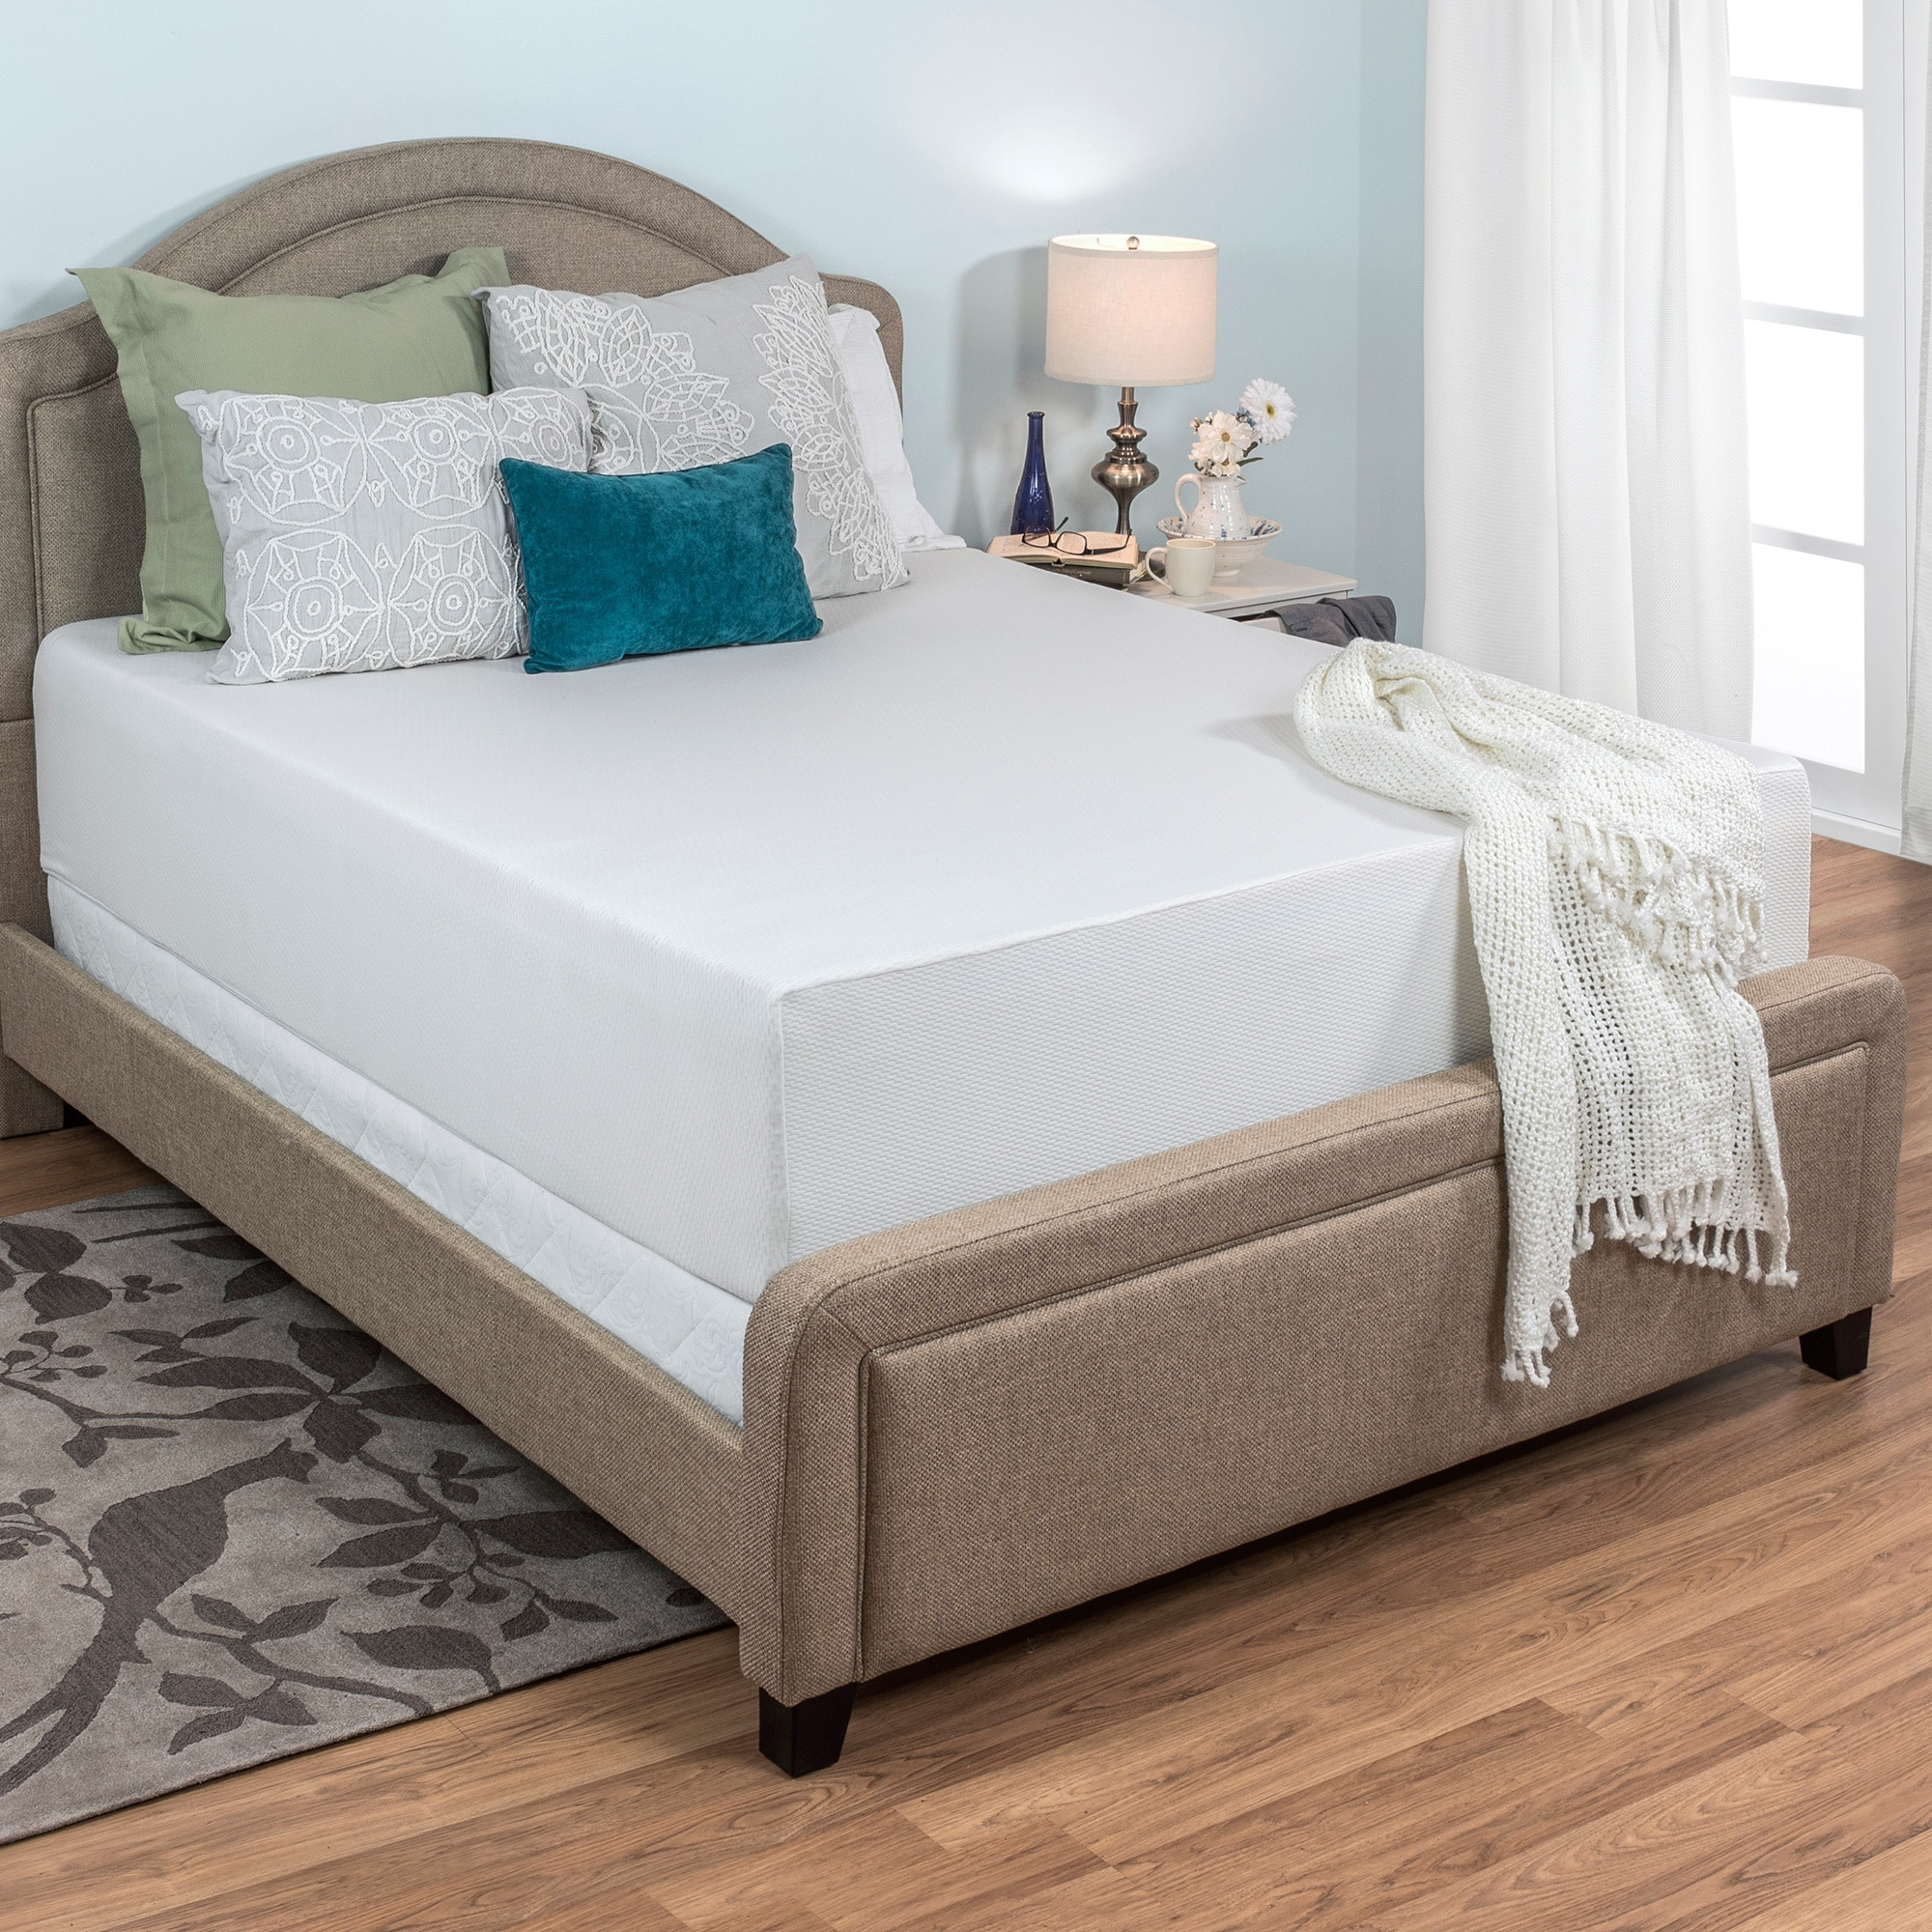 Good Inexpensive Furniture: #1Cheap Select Luxury Medium Firm 14-inch King-size Memory